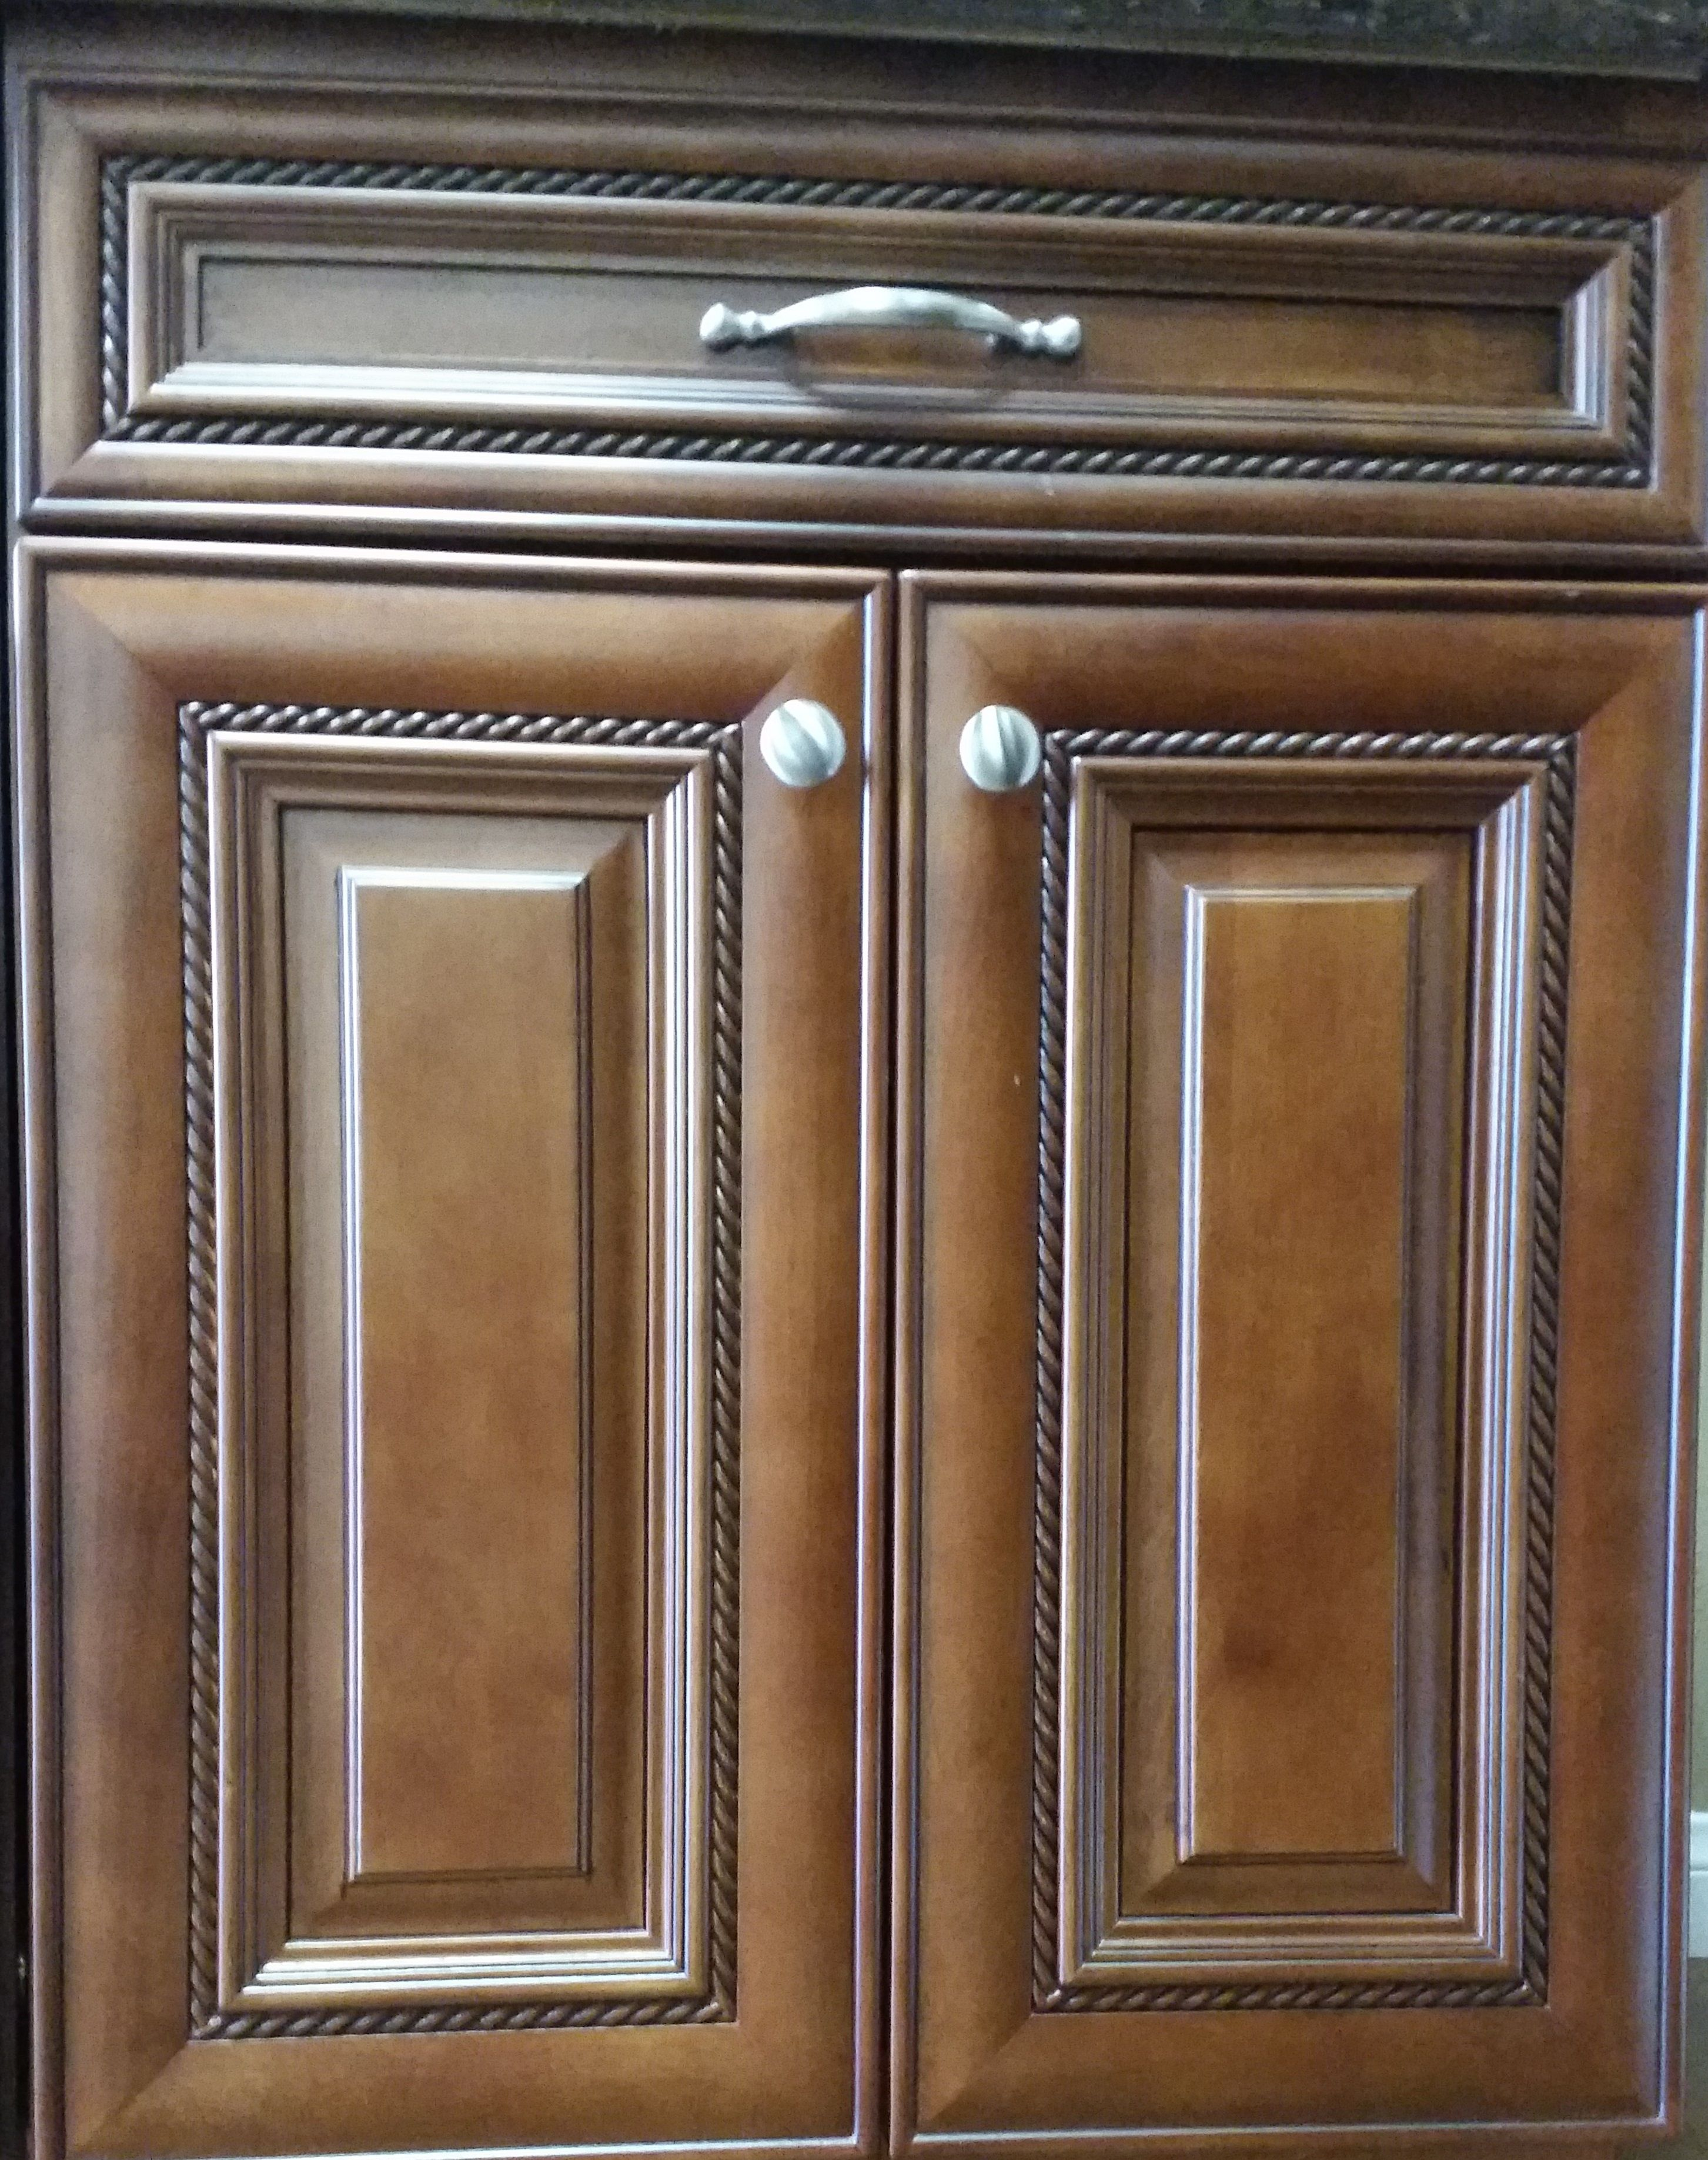 Cherry Kitchen Cabinet Doors Ex Cherry Rope Cabinet Door Styles Kitchen Cabinet